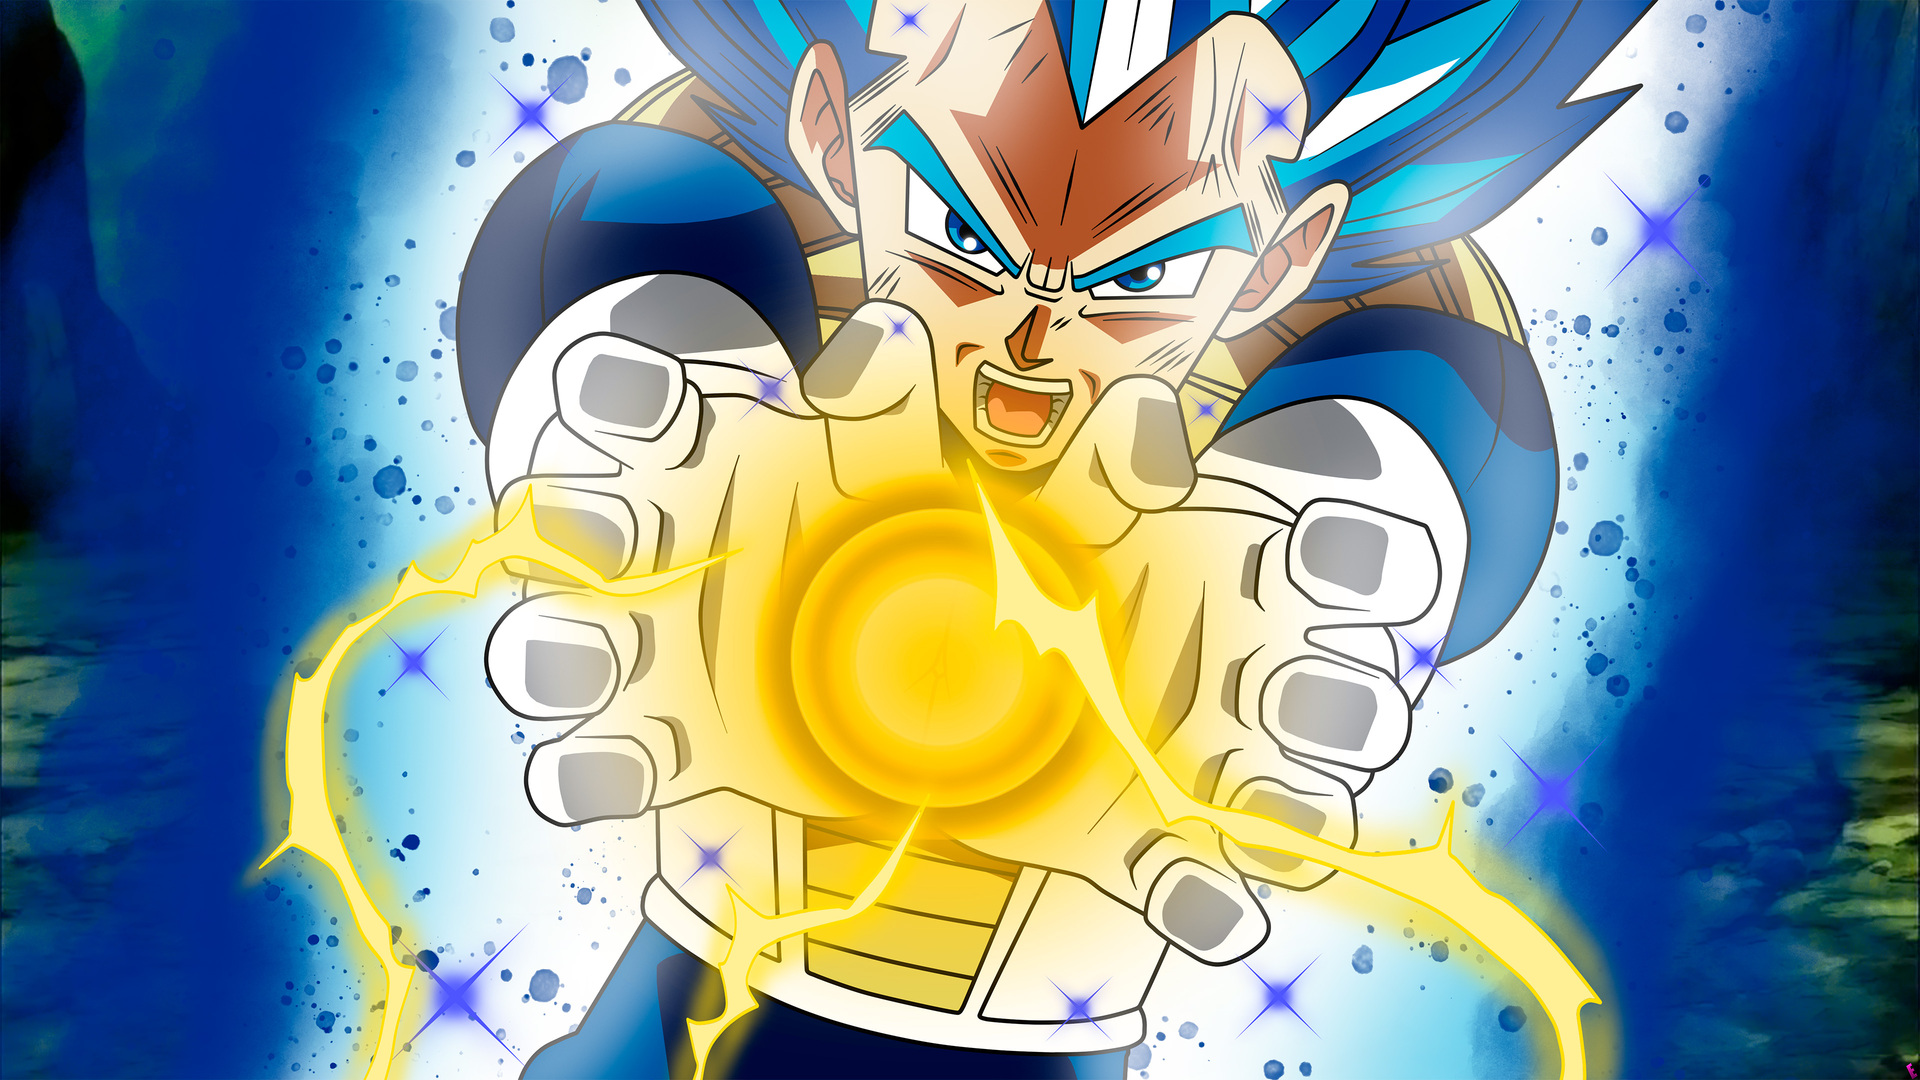 1920x1080 vegeta dragon ball laptop full hd 1080p hd 4k wallpapers